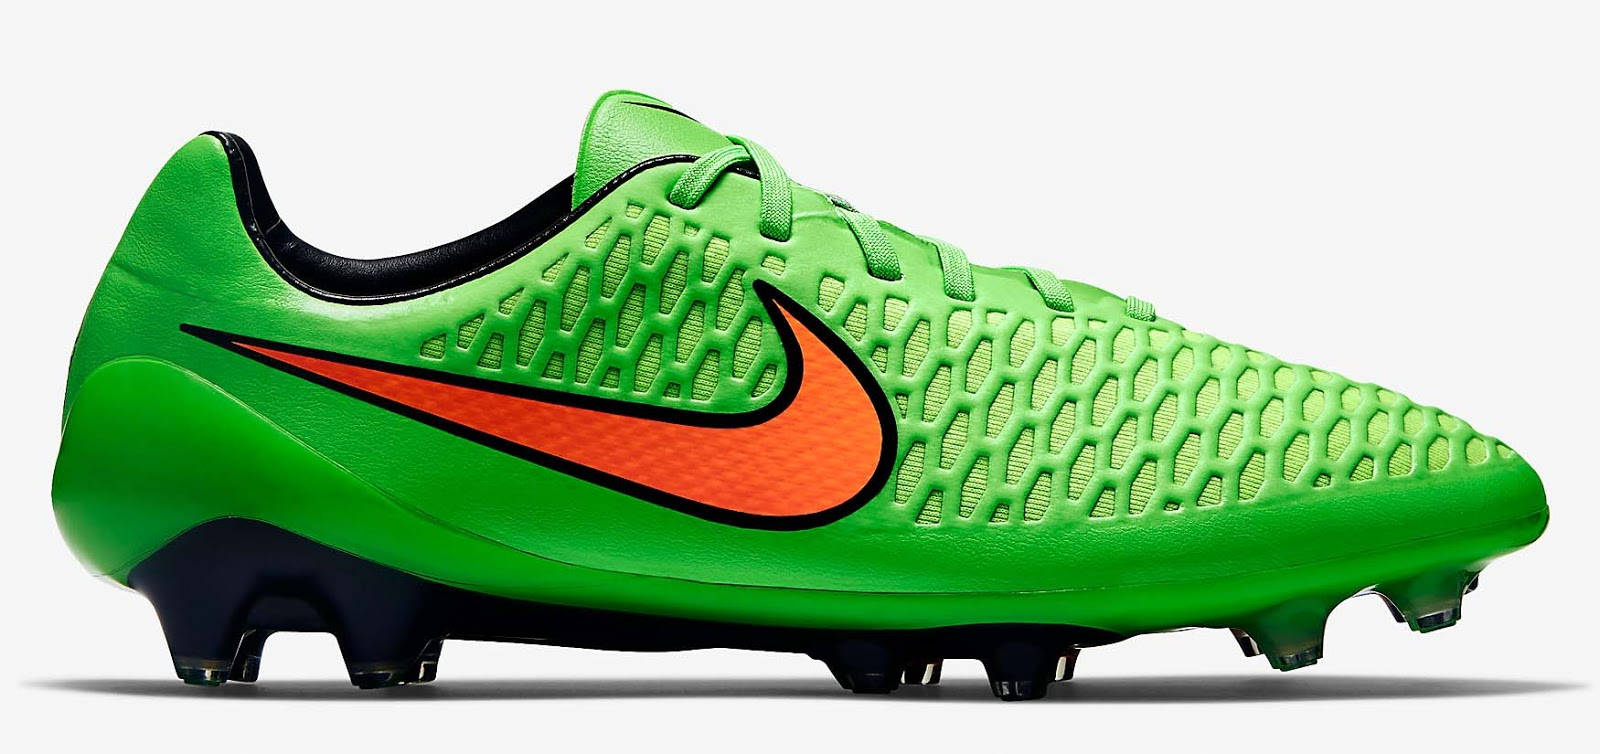 green nike magista opus 2015 boot released footy headlines